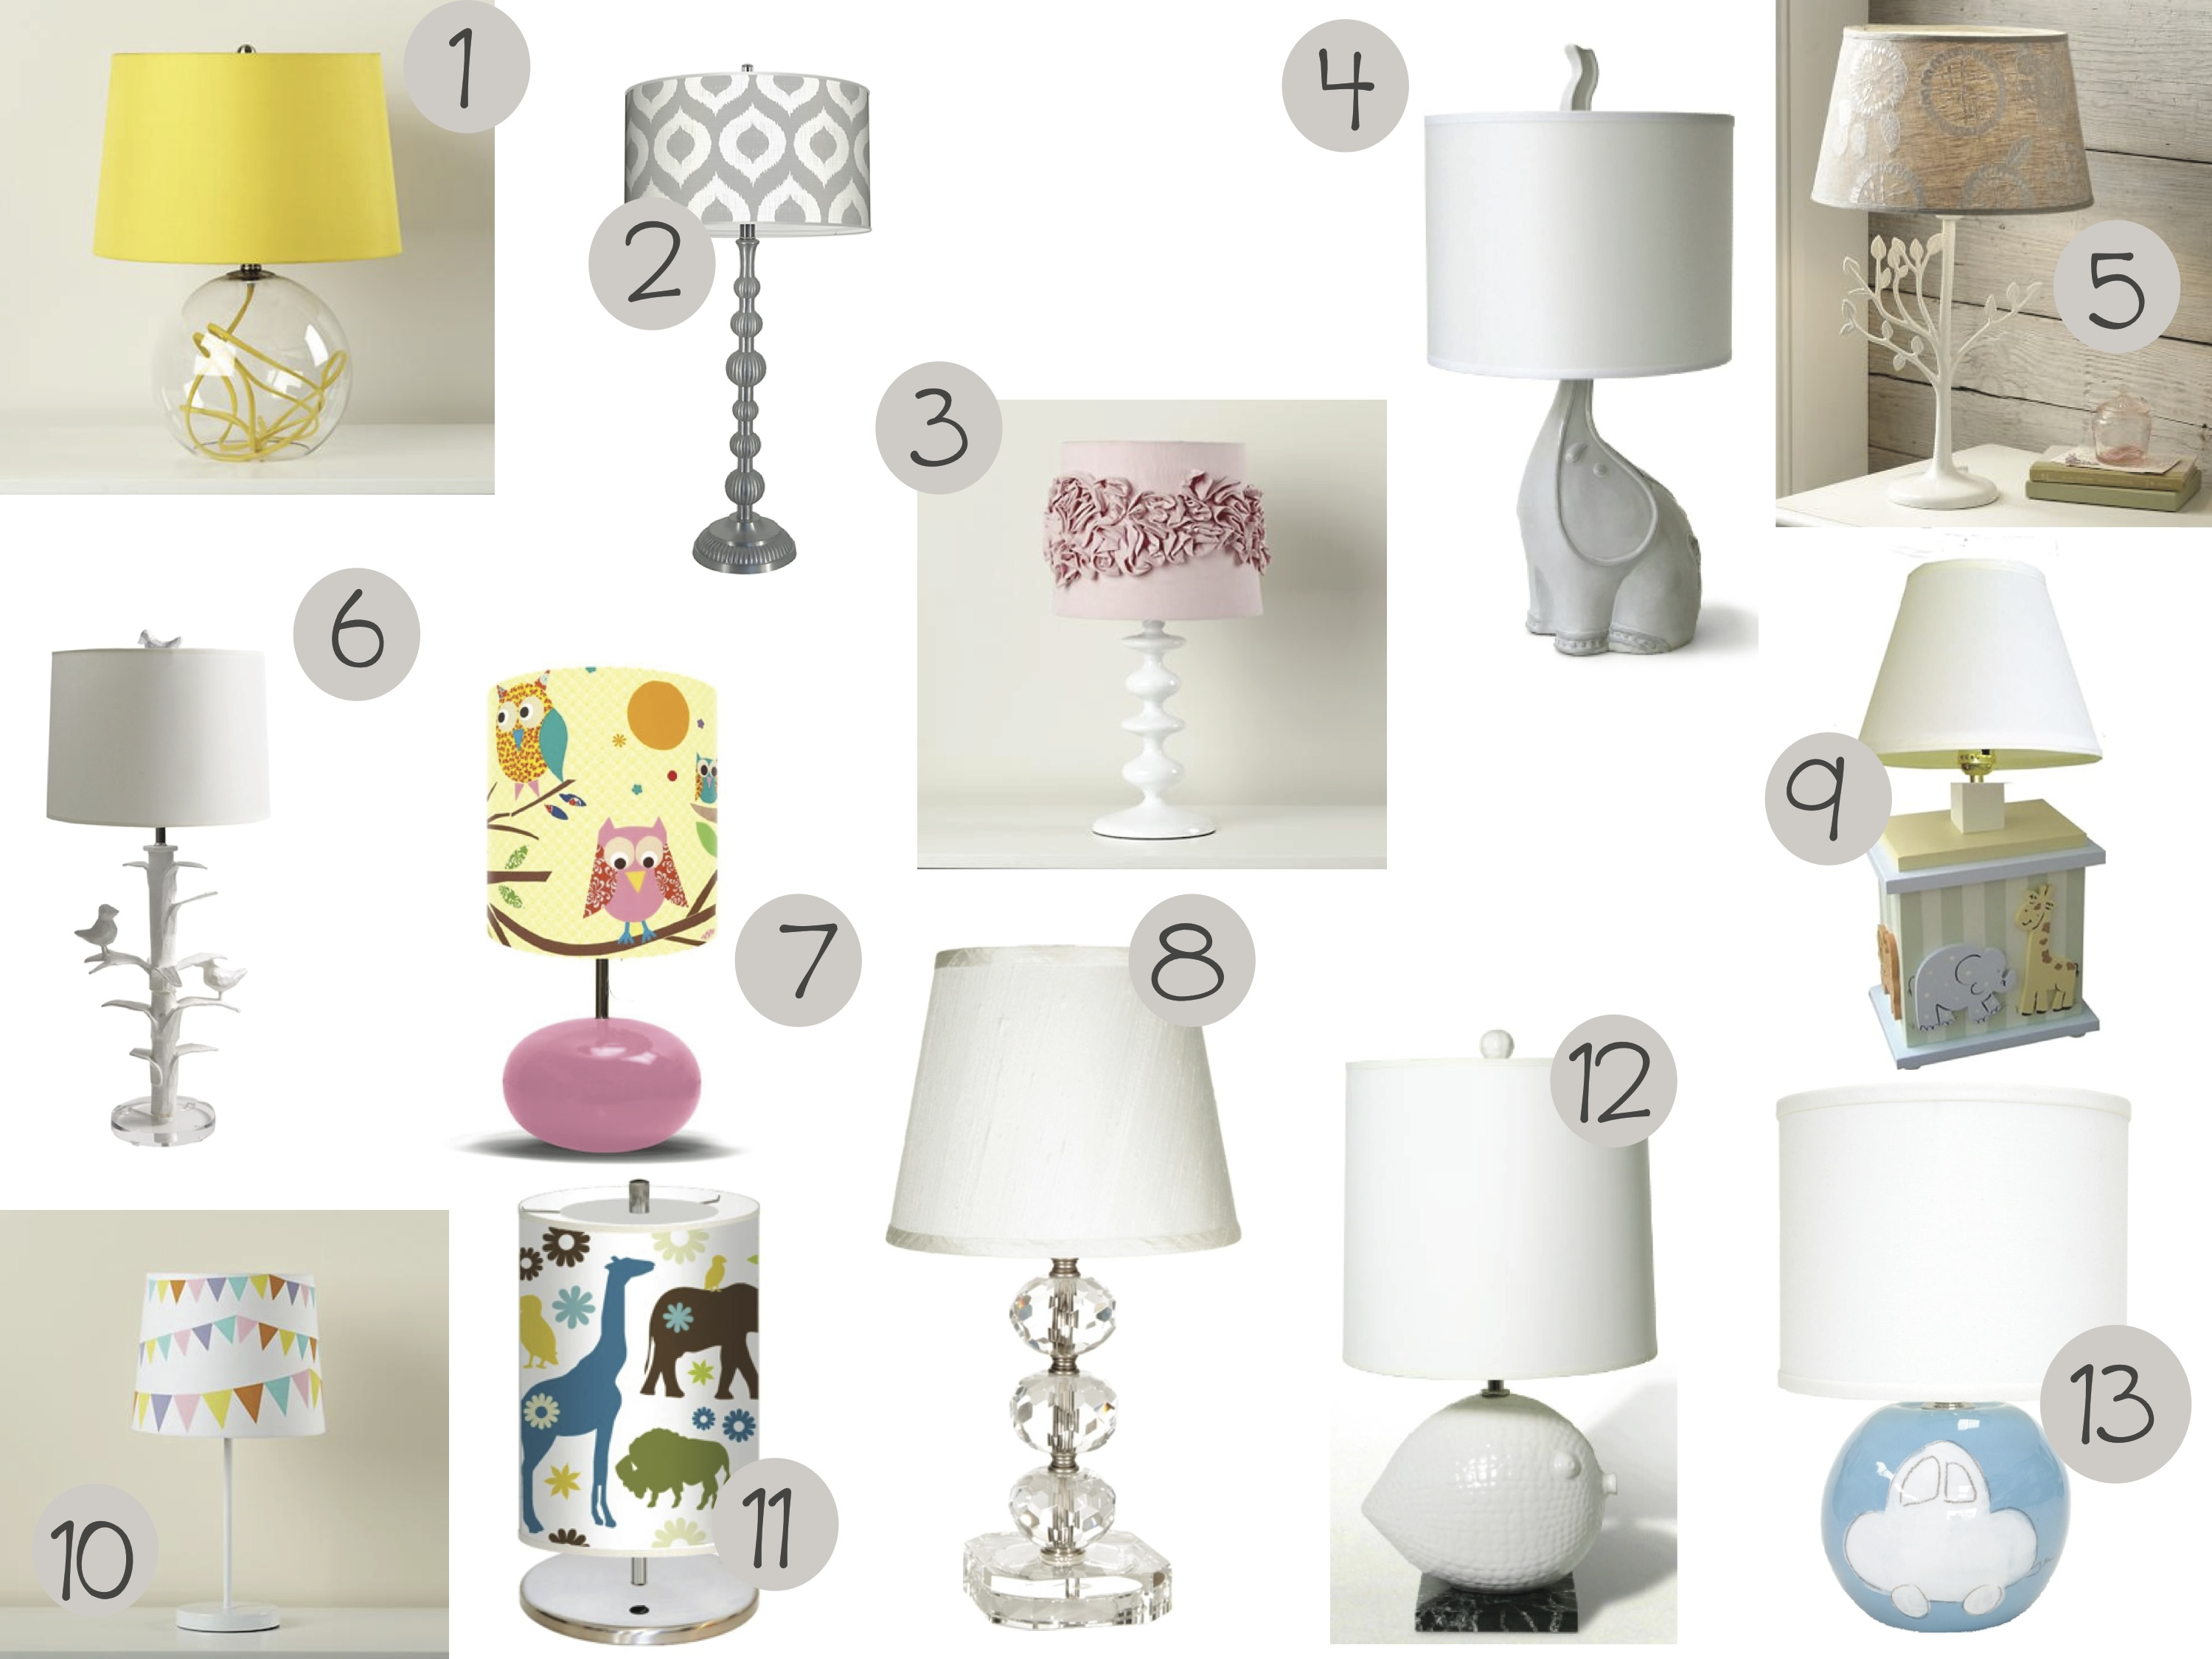 Table Lamps For Kids In The Spotlight With Table Lamps Kids Are From Pluto A